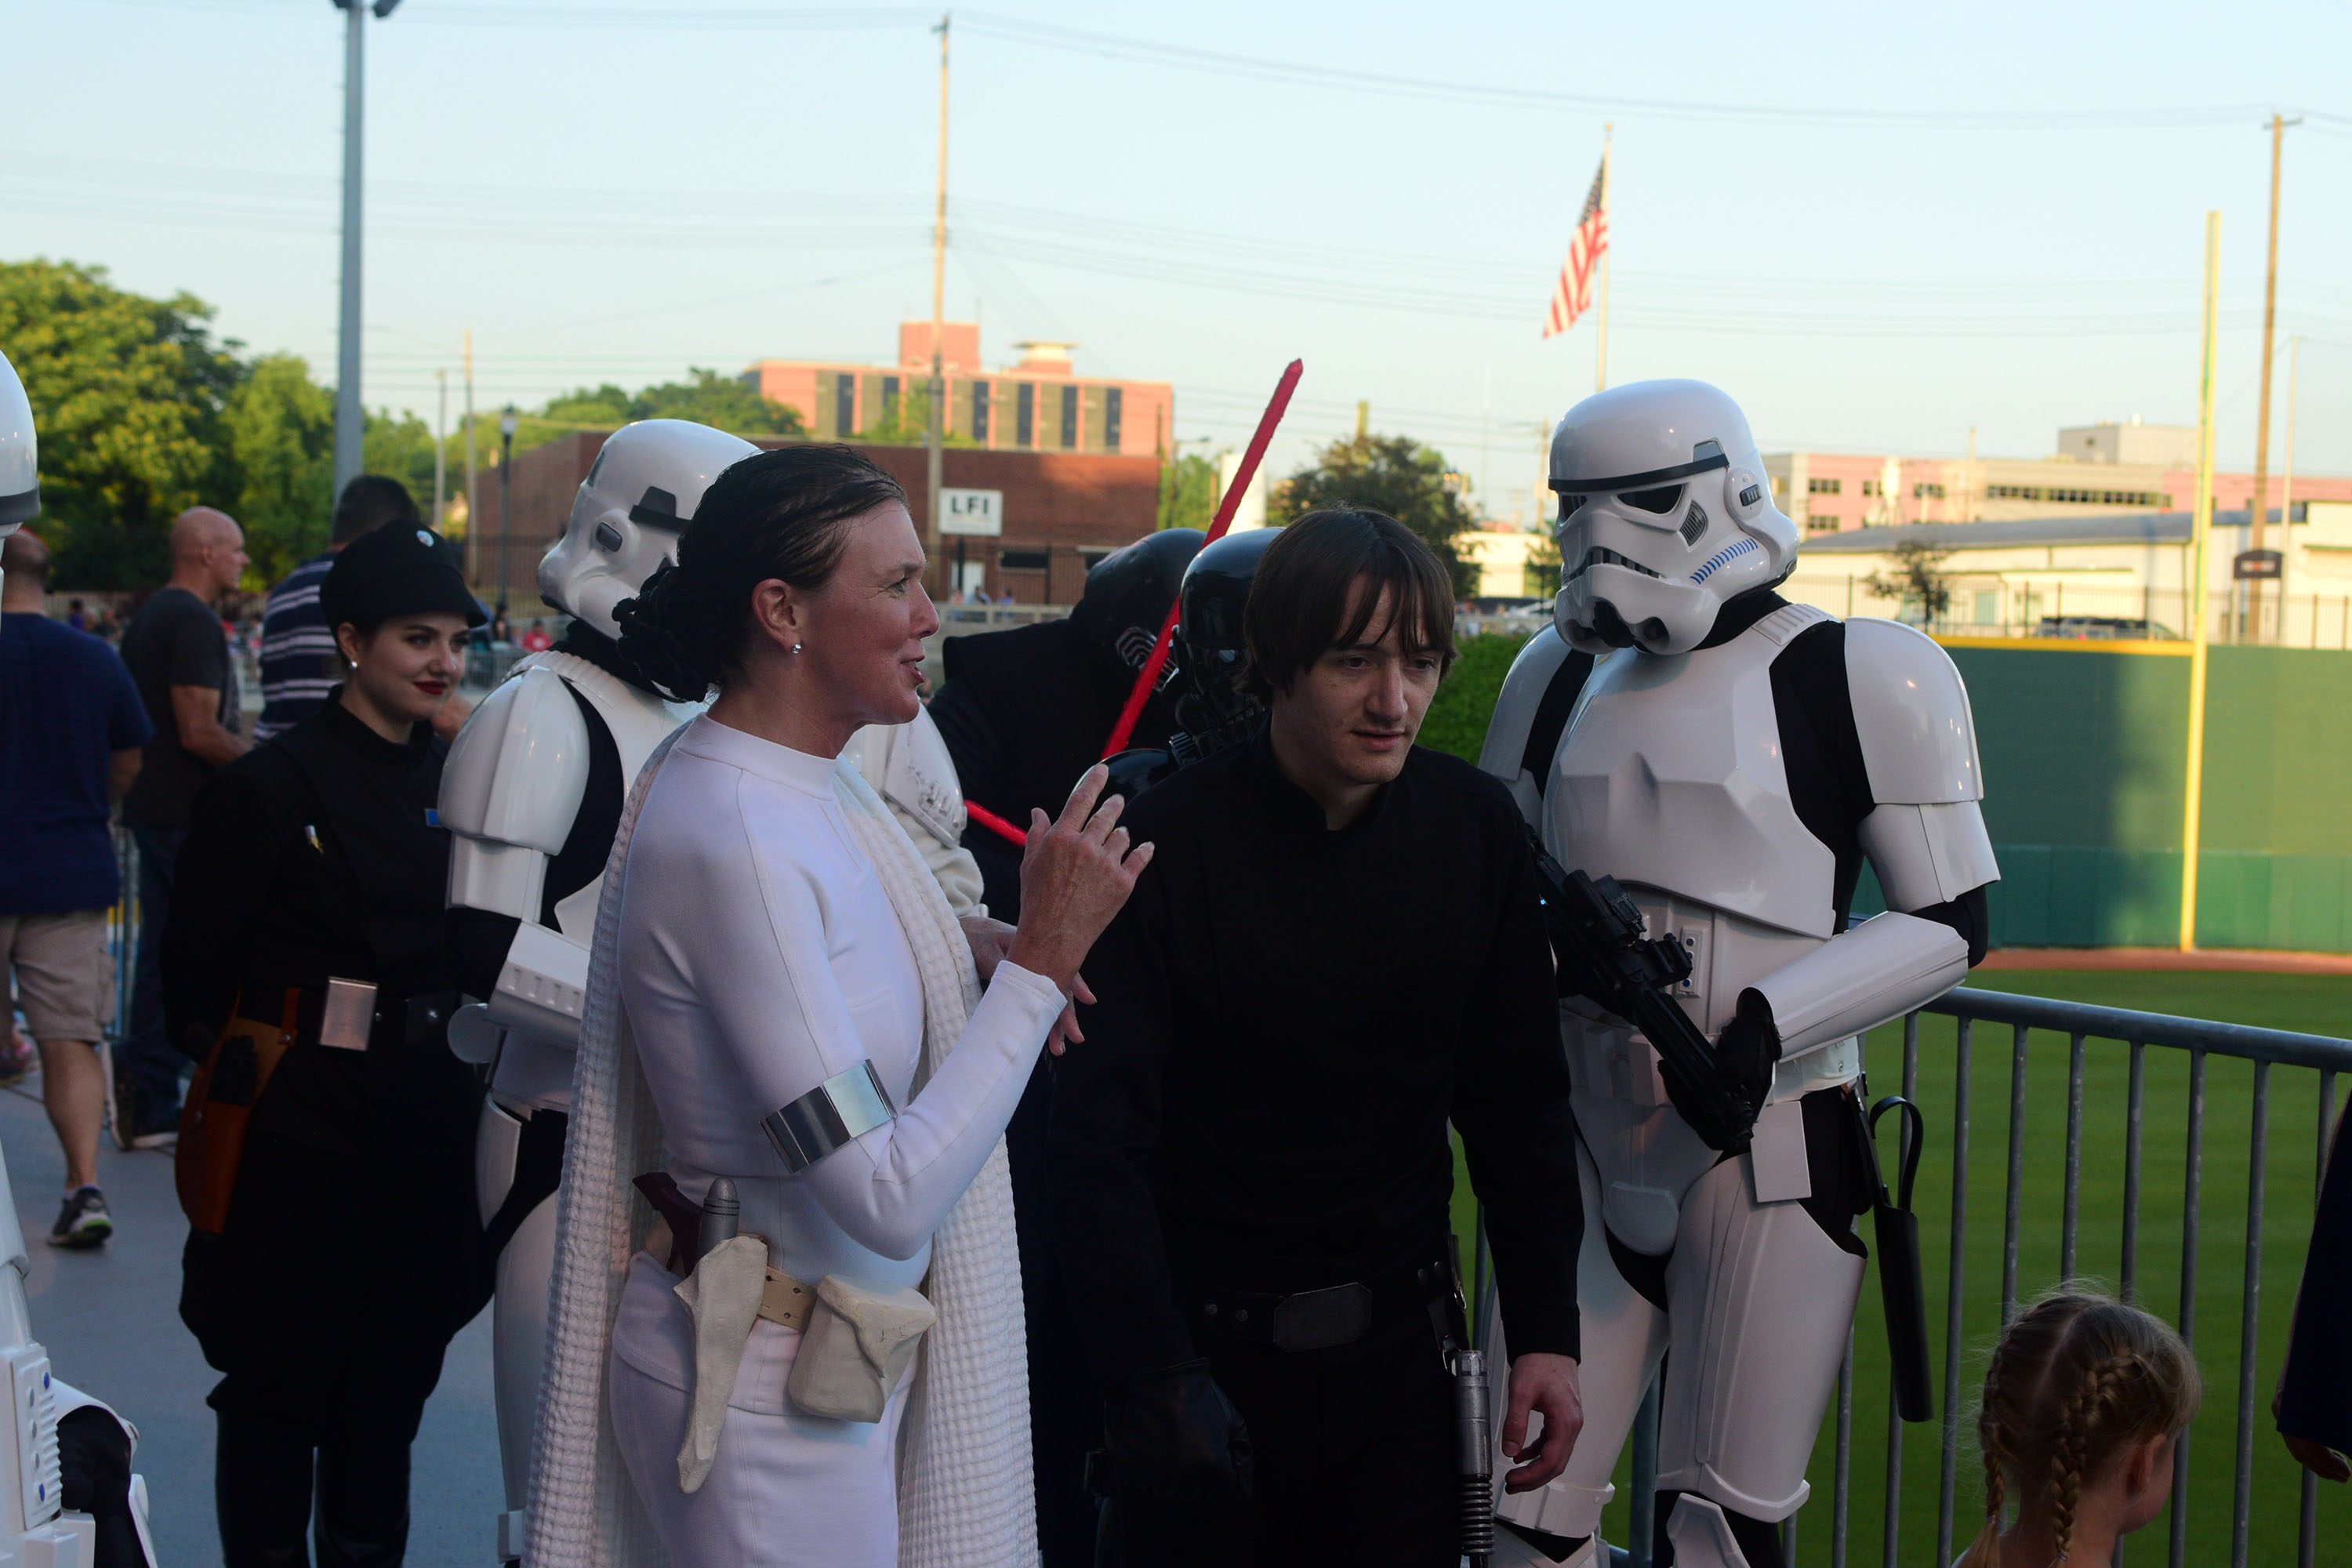 During a Star Wars themed baseball game at Cooley Law School Stadium